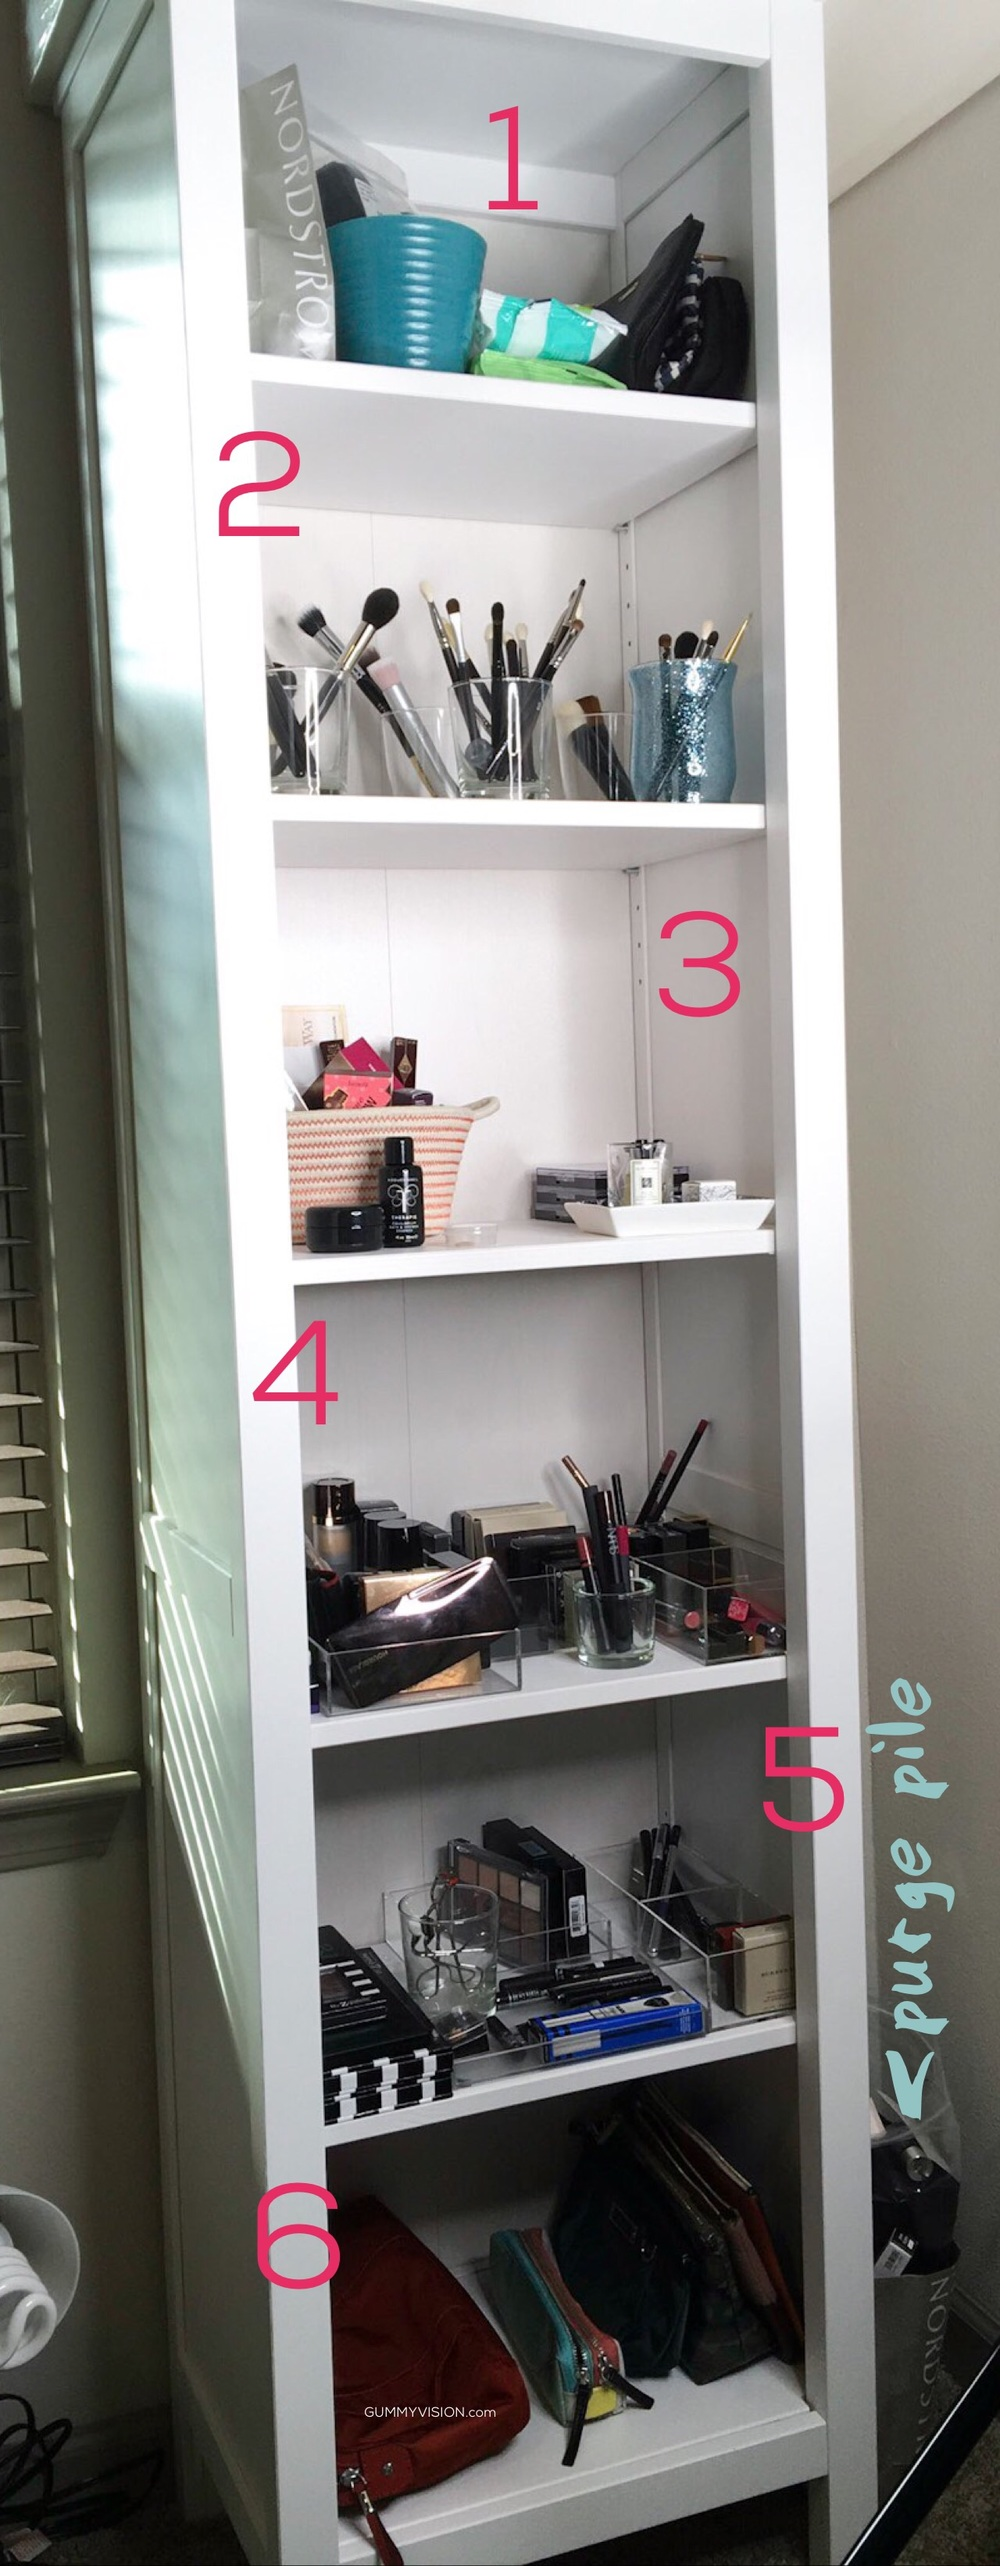 Updated Makeup Storage - gummyvision.com